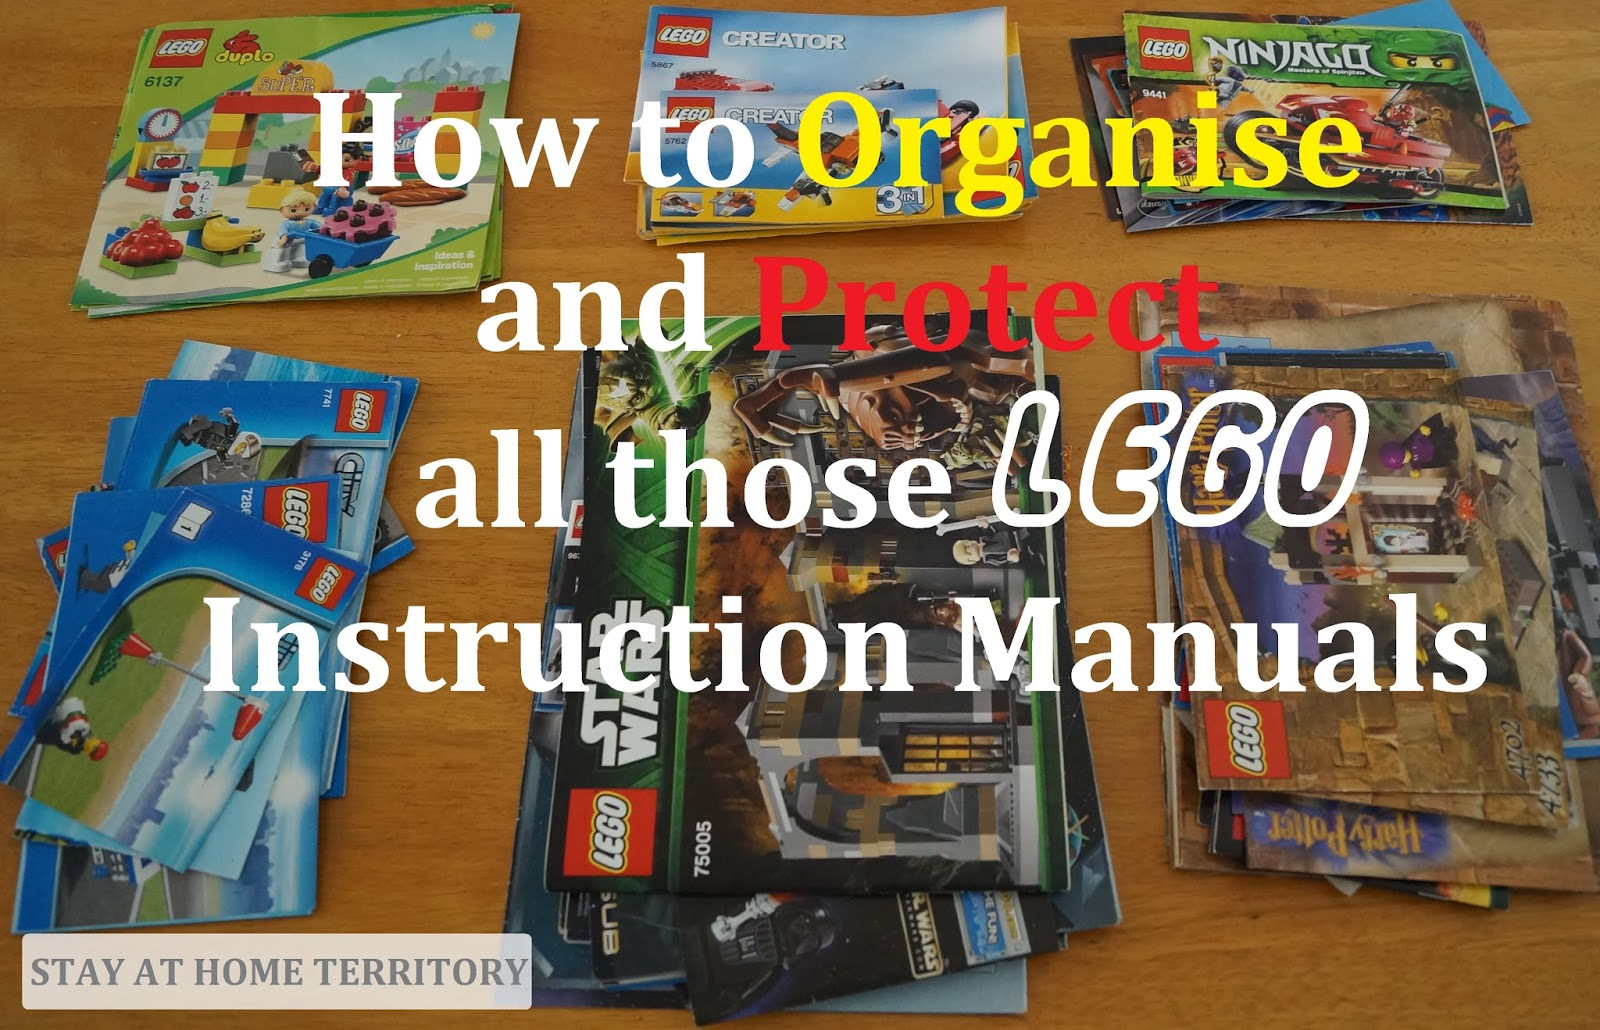 Lego Manuals Booklets Open Source User Manual